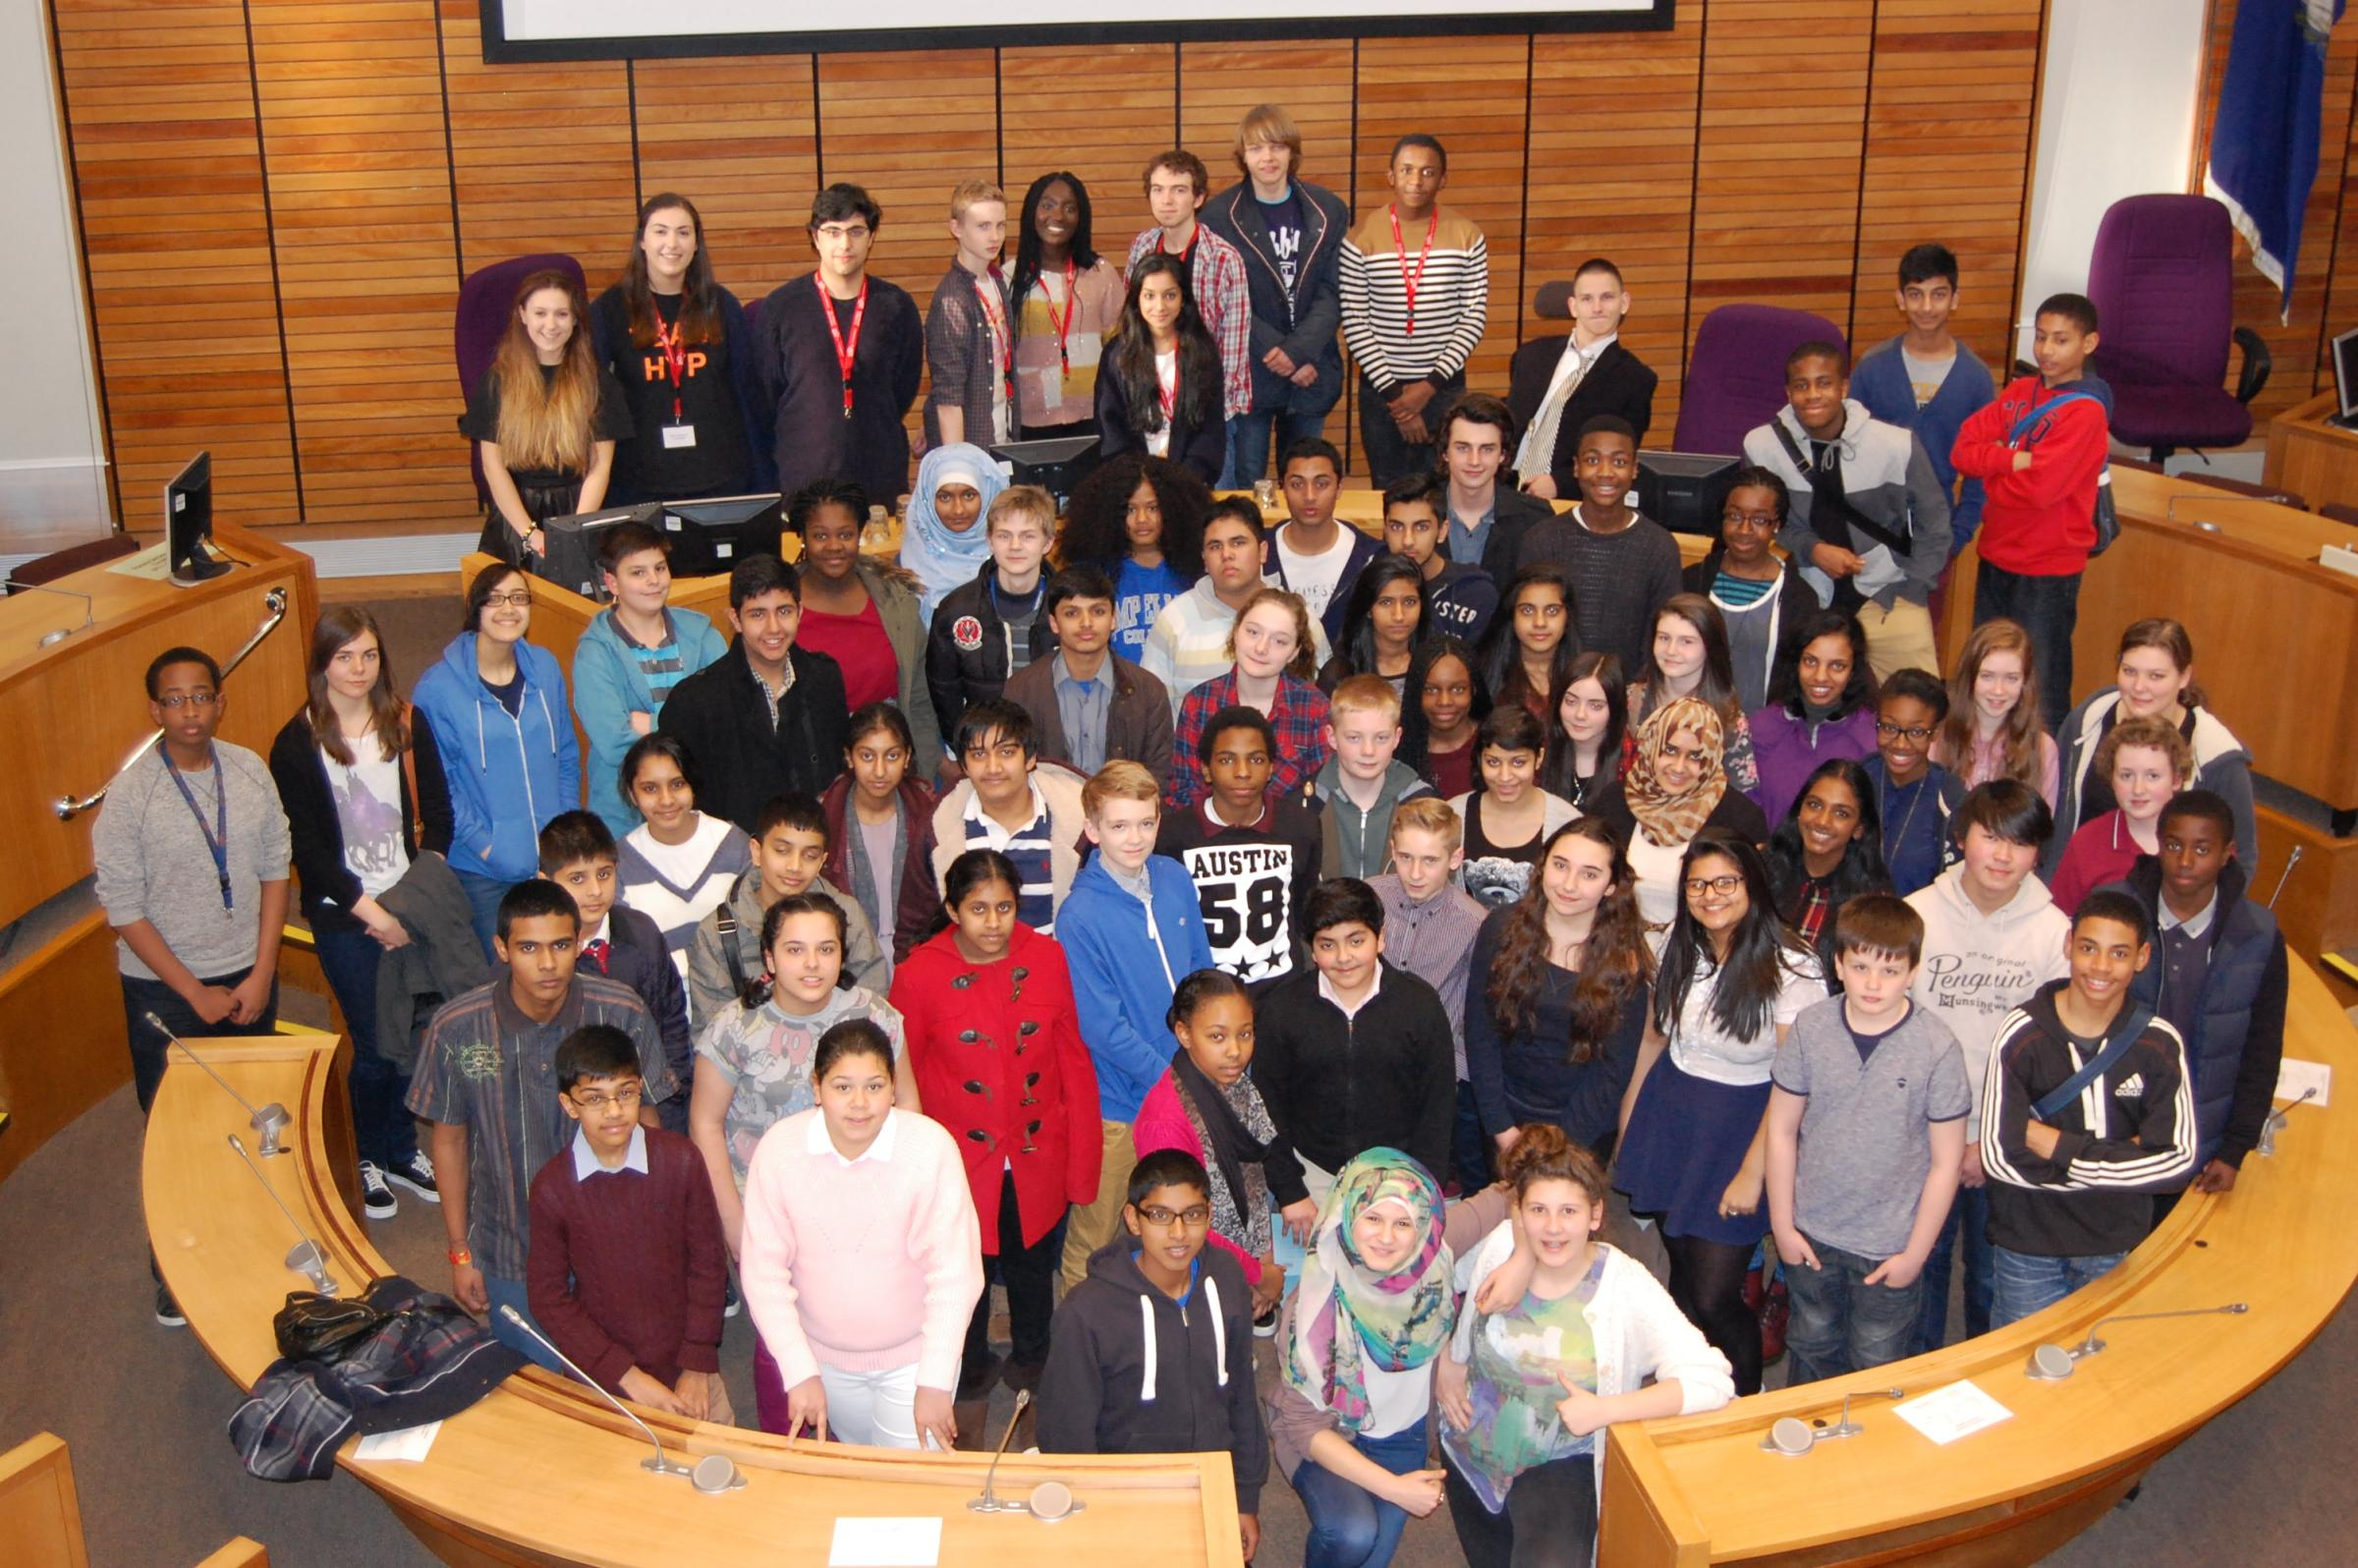 Thousands vote for new youth parliament members